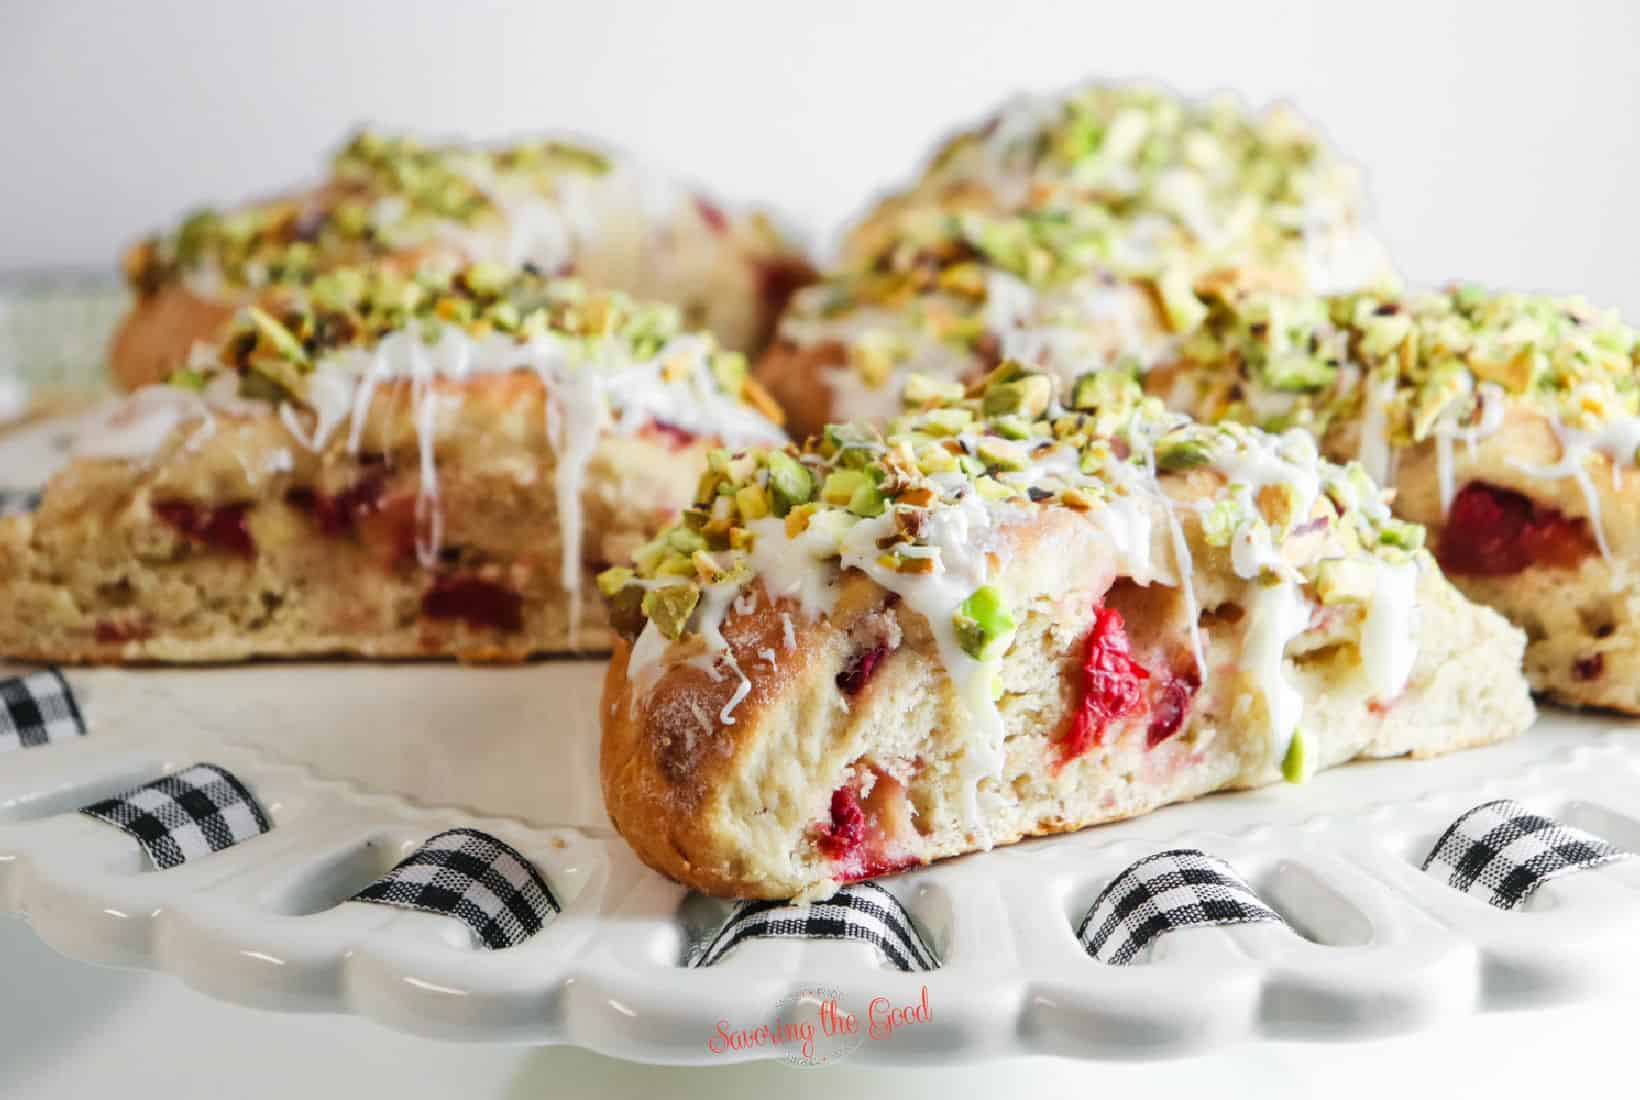 5 Cherry Scones with garnishes on a white plate